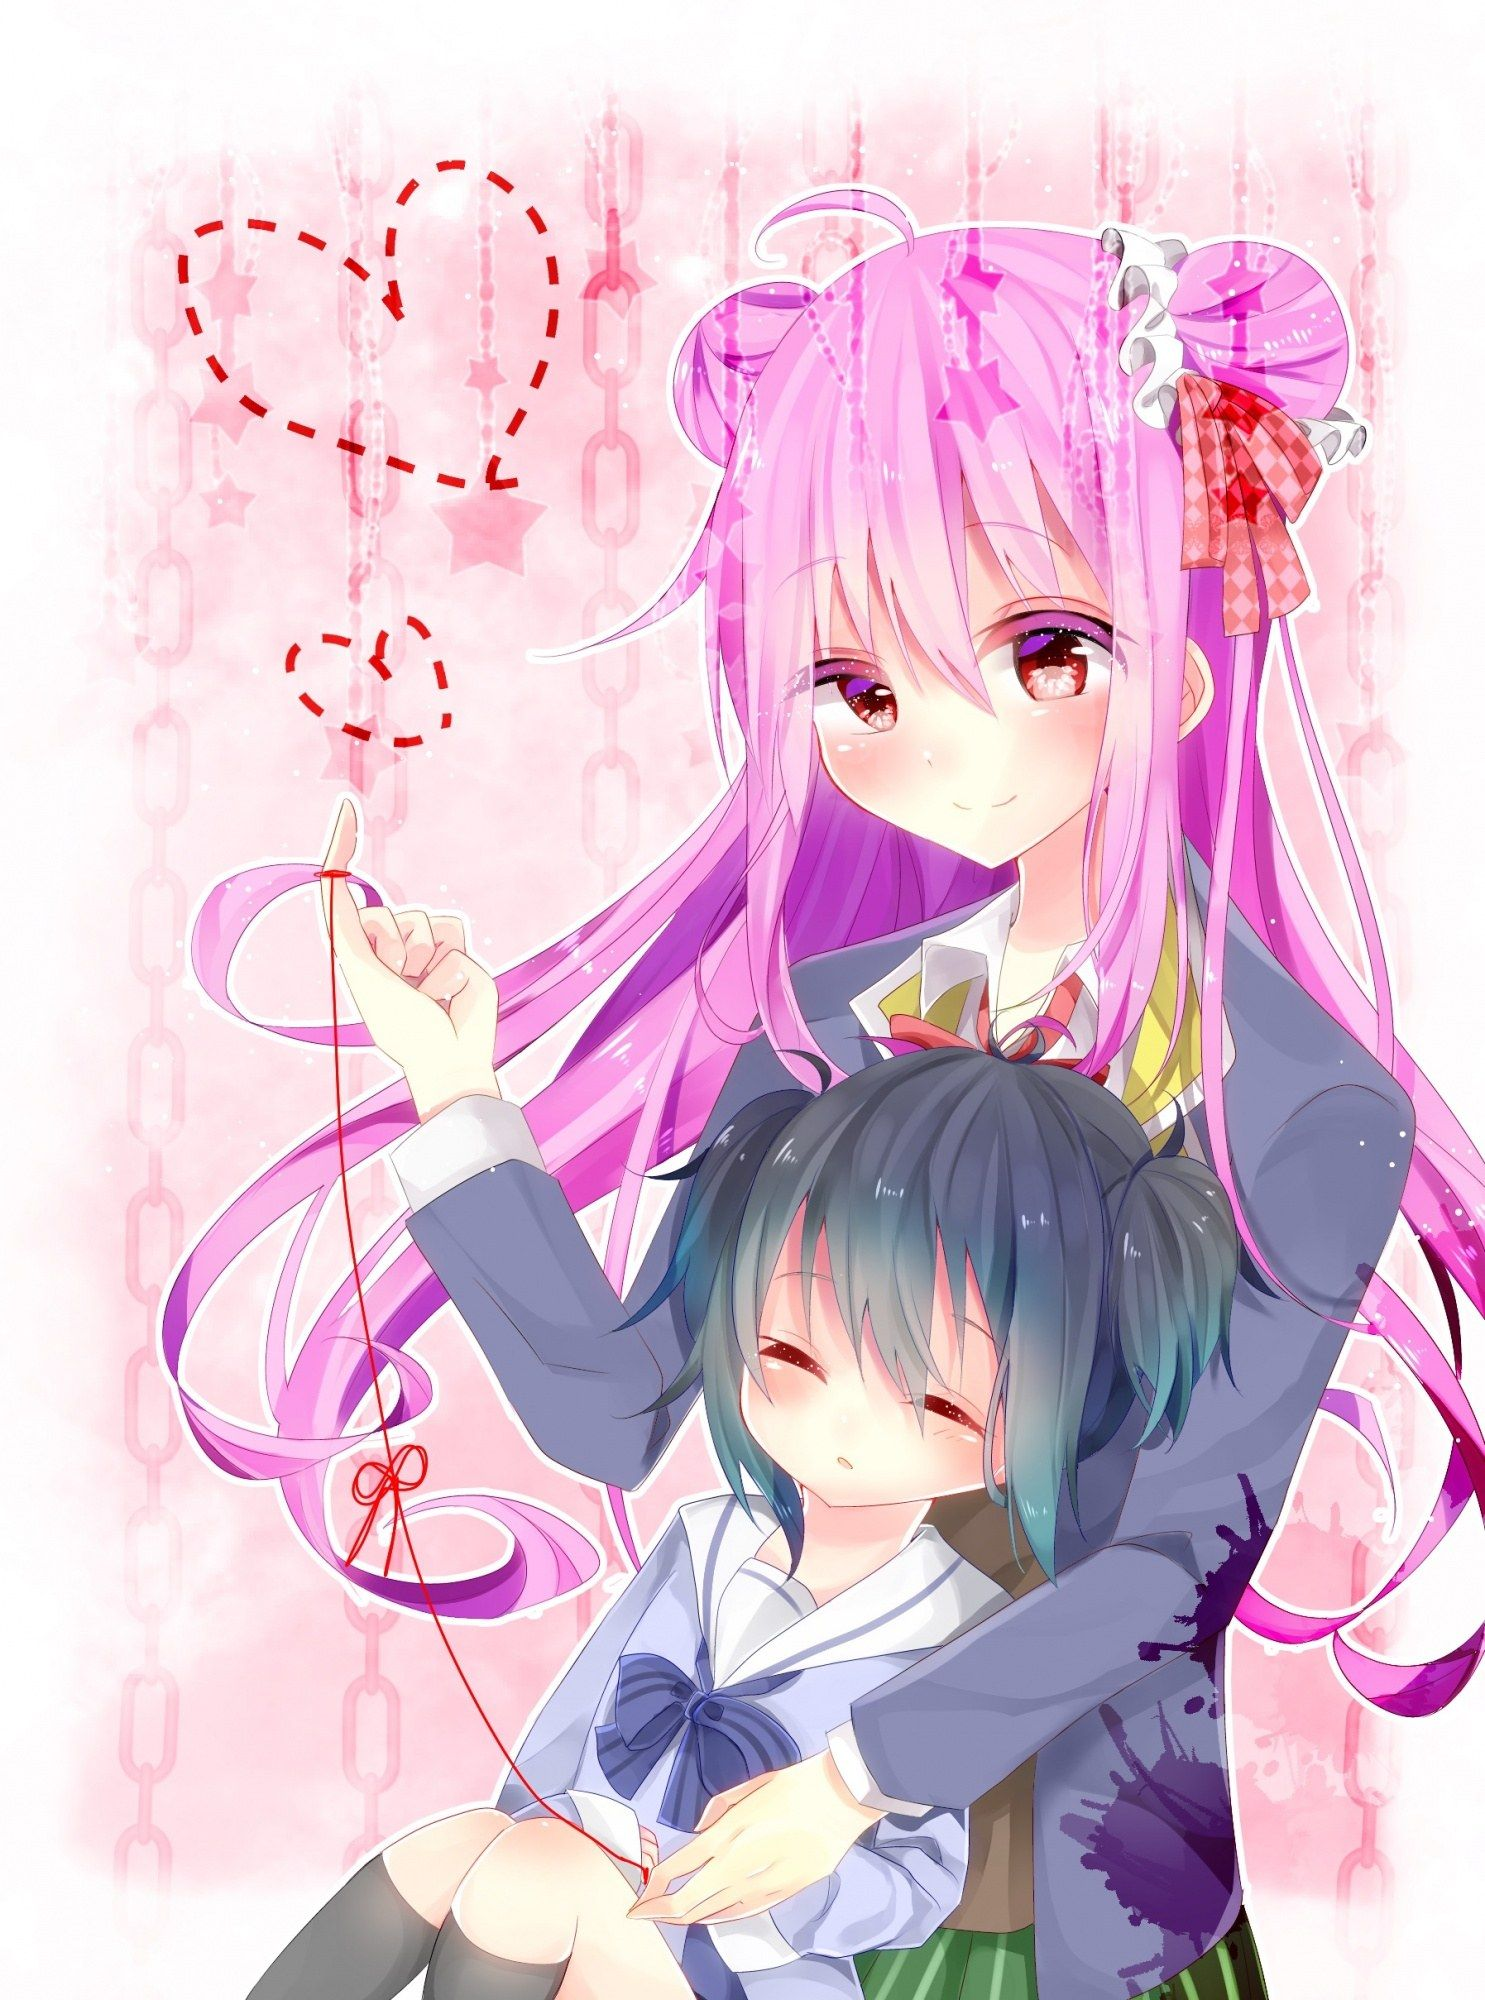 Pin by 𝙷𝚊𝚗𝚗𝚊𝚑 on ⋆☾Happy Sugar Life☽⋆ Anime, Life, Happy